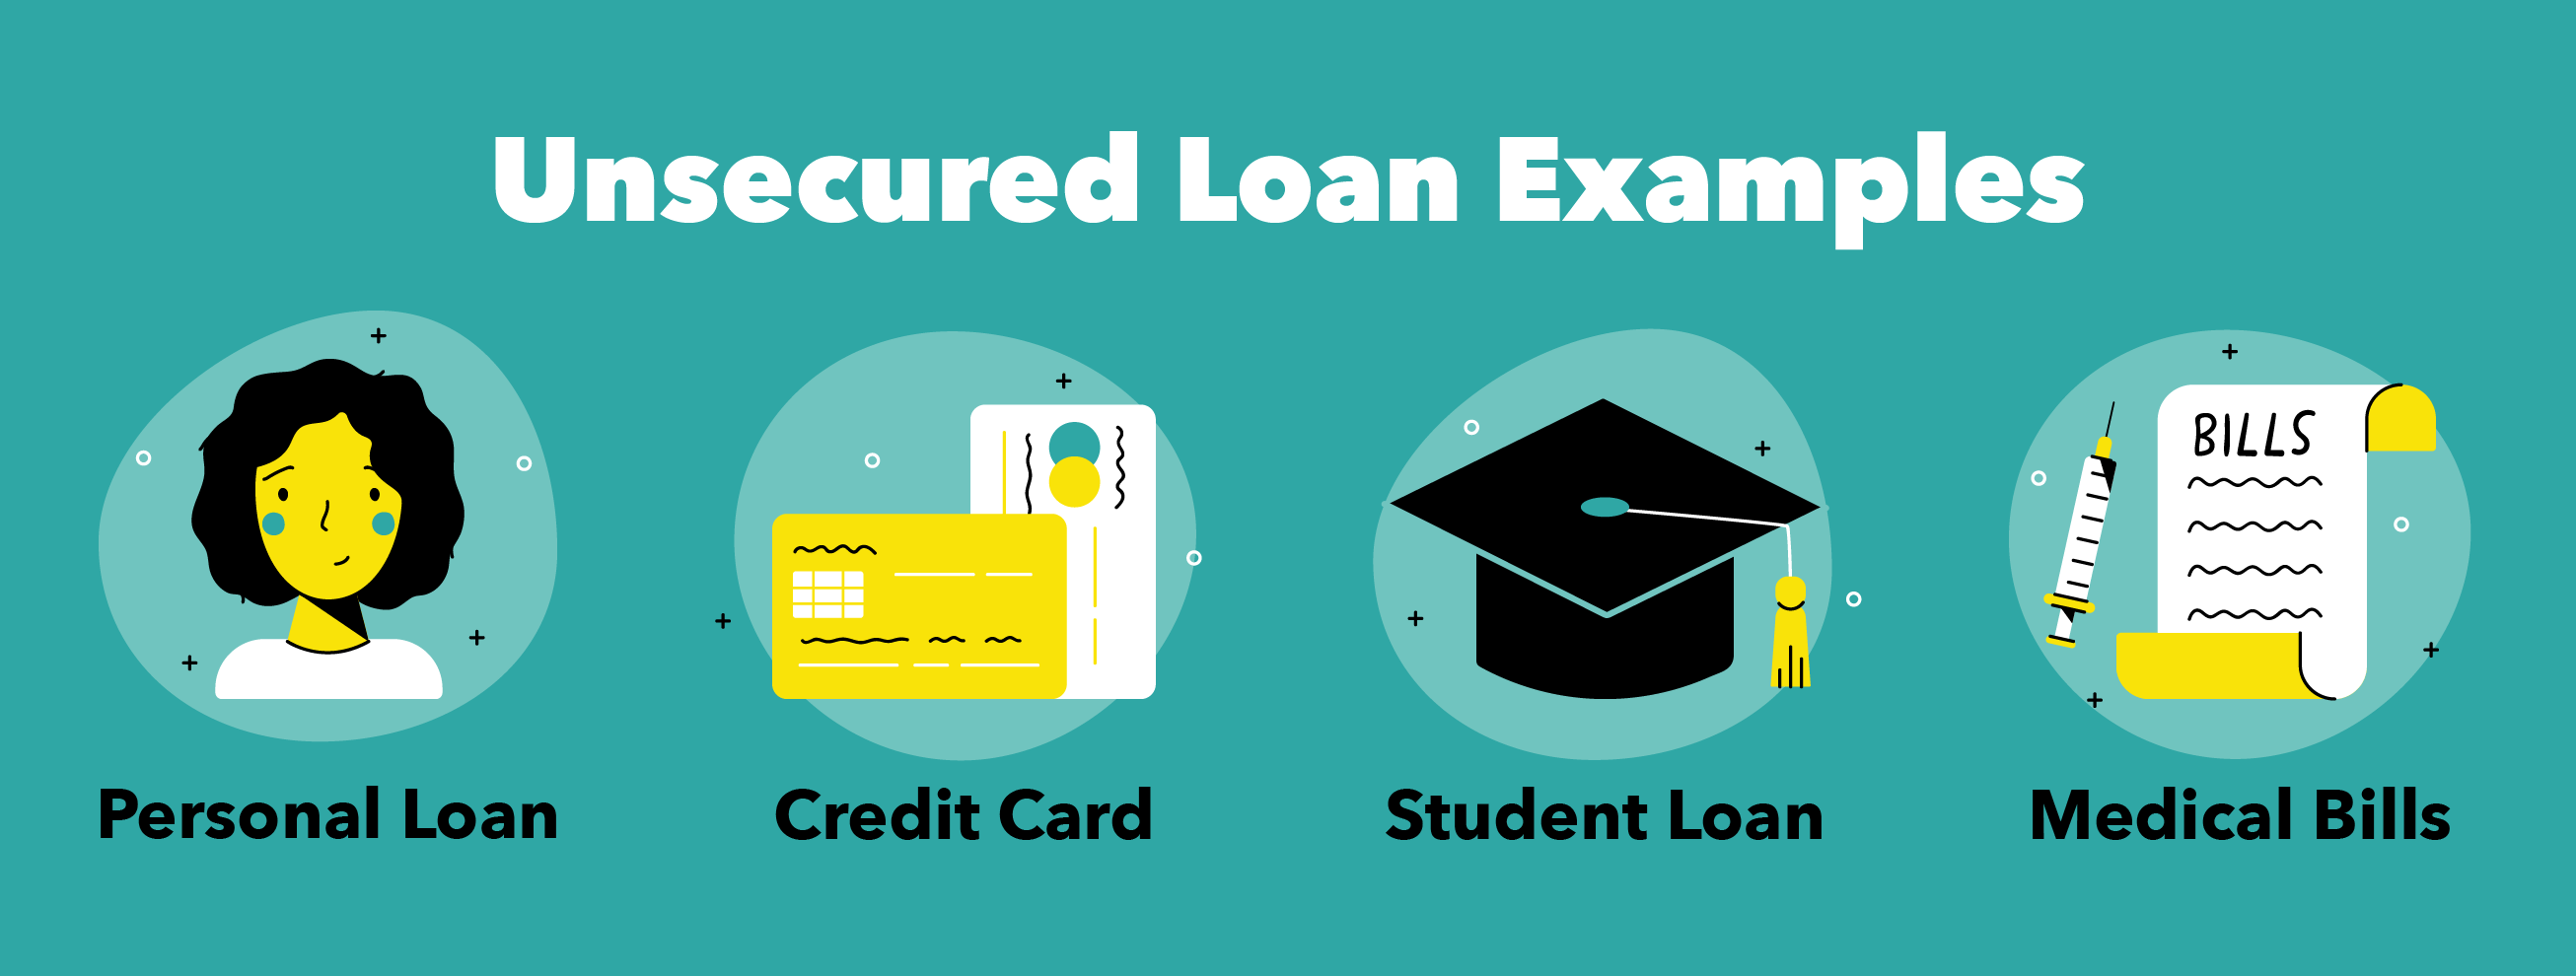 Unsecured Loan Examples